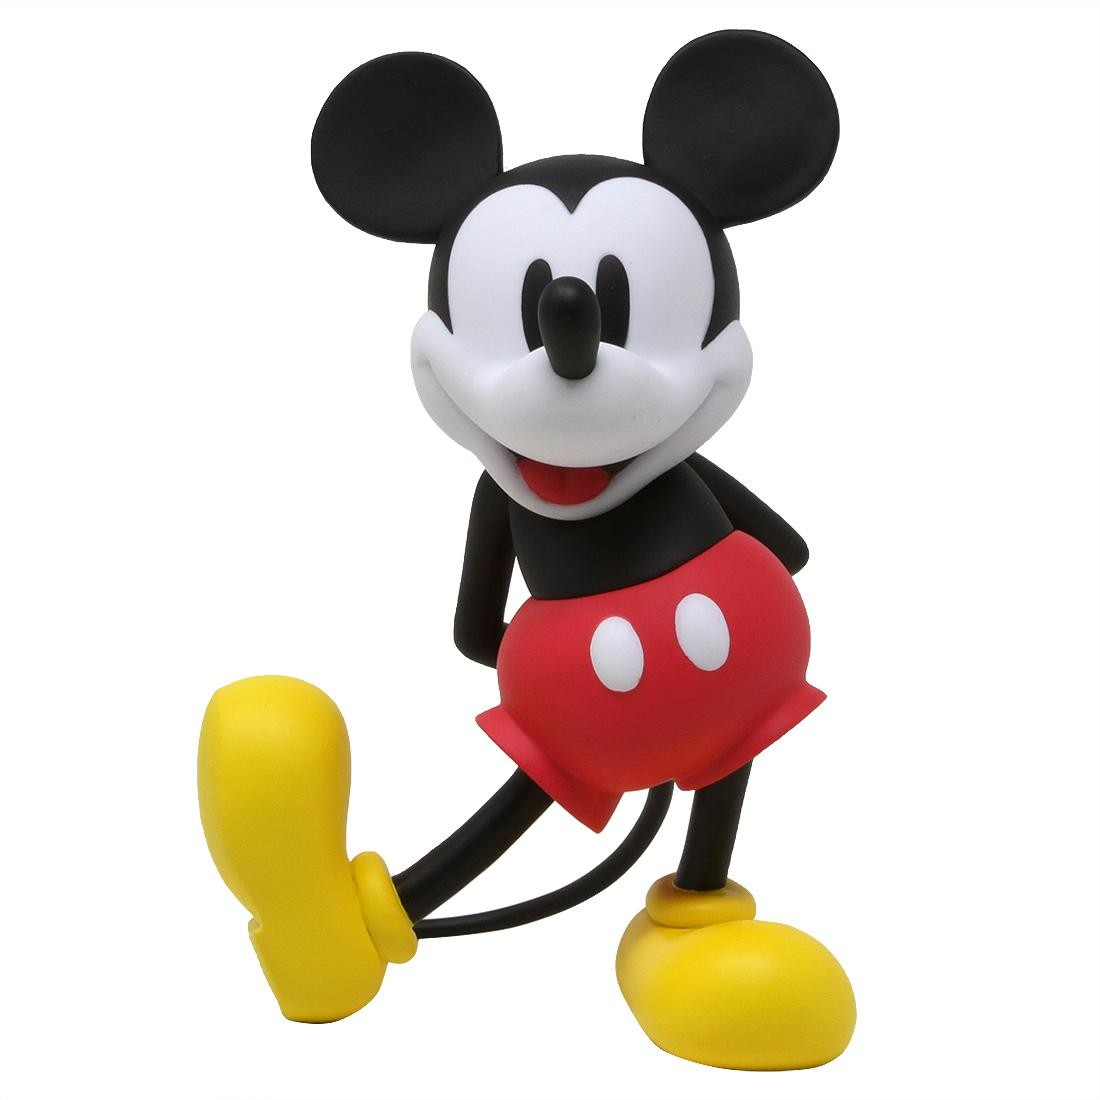 Medicom VCD Mickey Mouse Standard Normal ver. Figure (red)